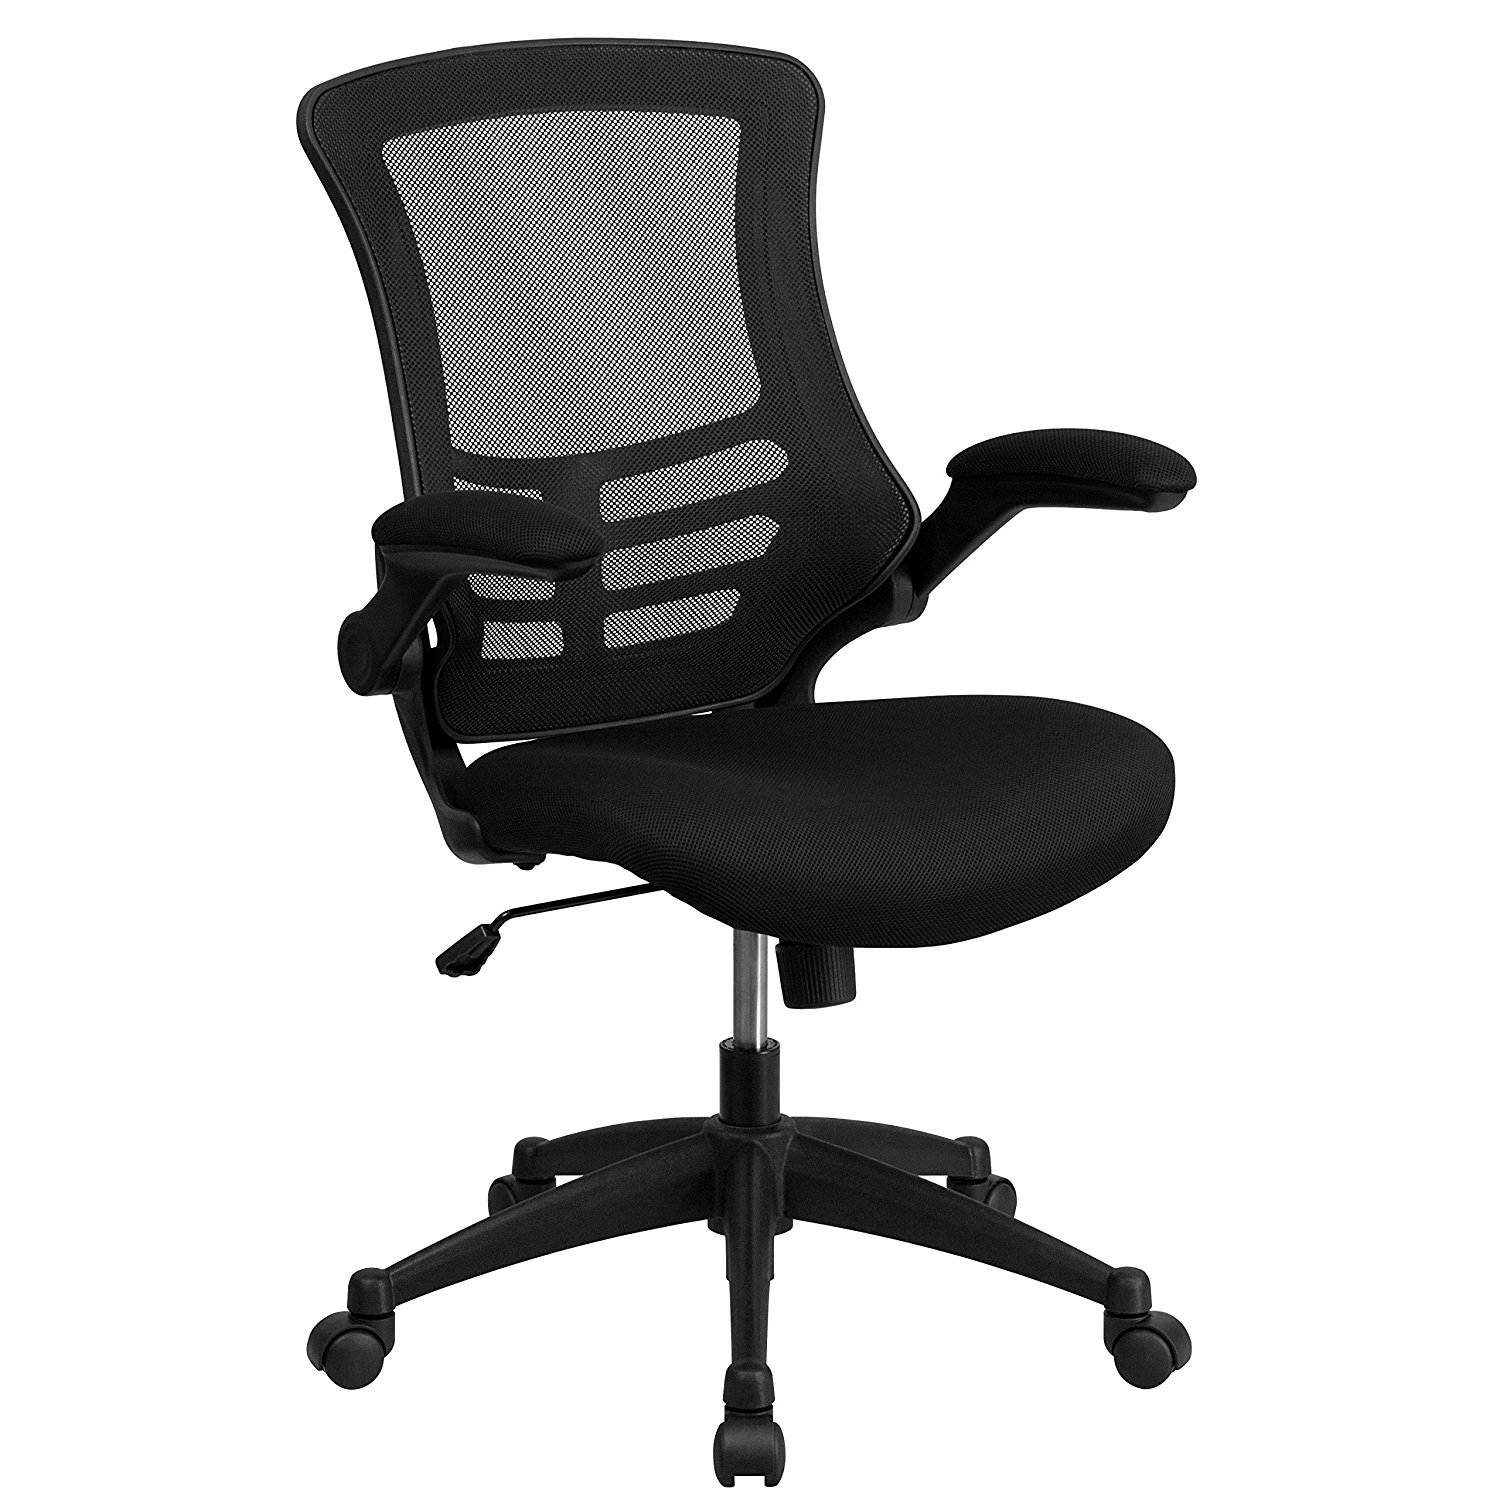 The Comfortable Seat Will Bring Your Work To Done Perfectly Chair for measurements 1500 X 1500